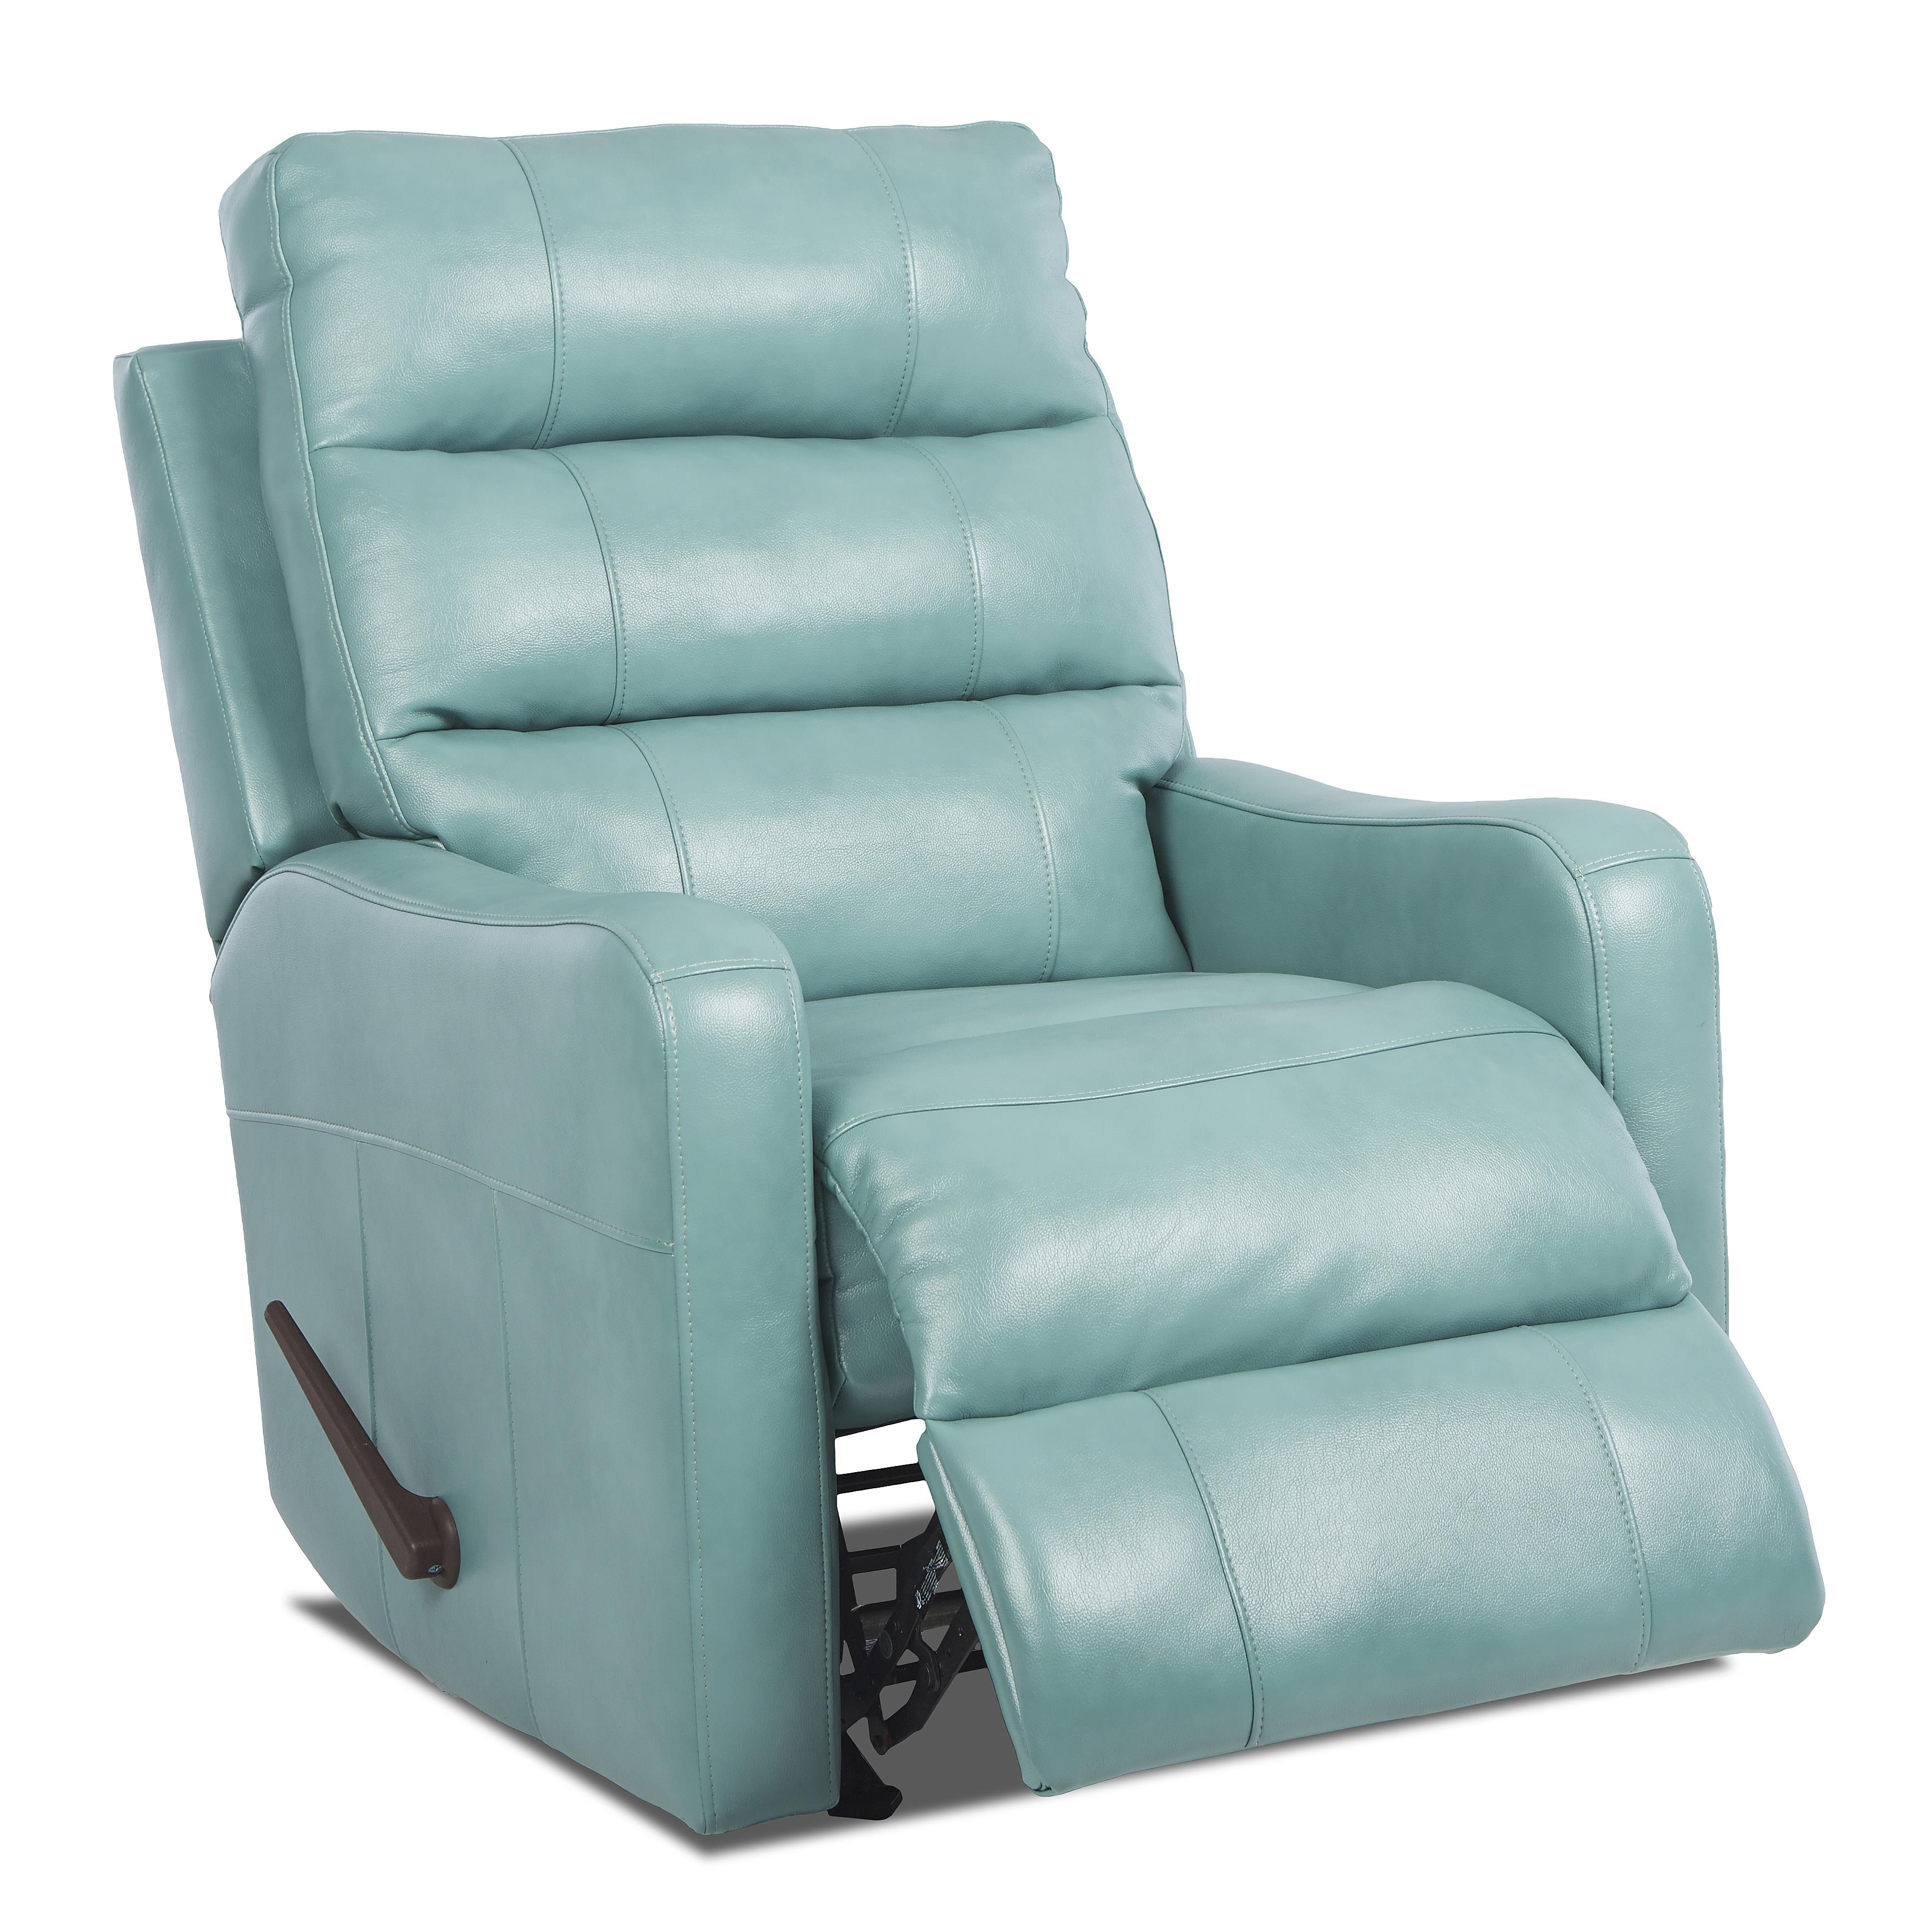 ... Swivel Rocking Reclining Chair by Klaussner  Wolf Furniture